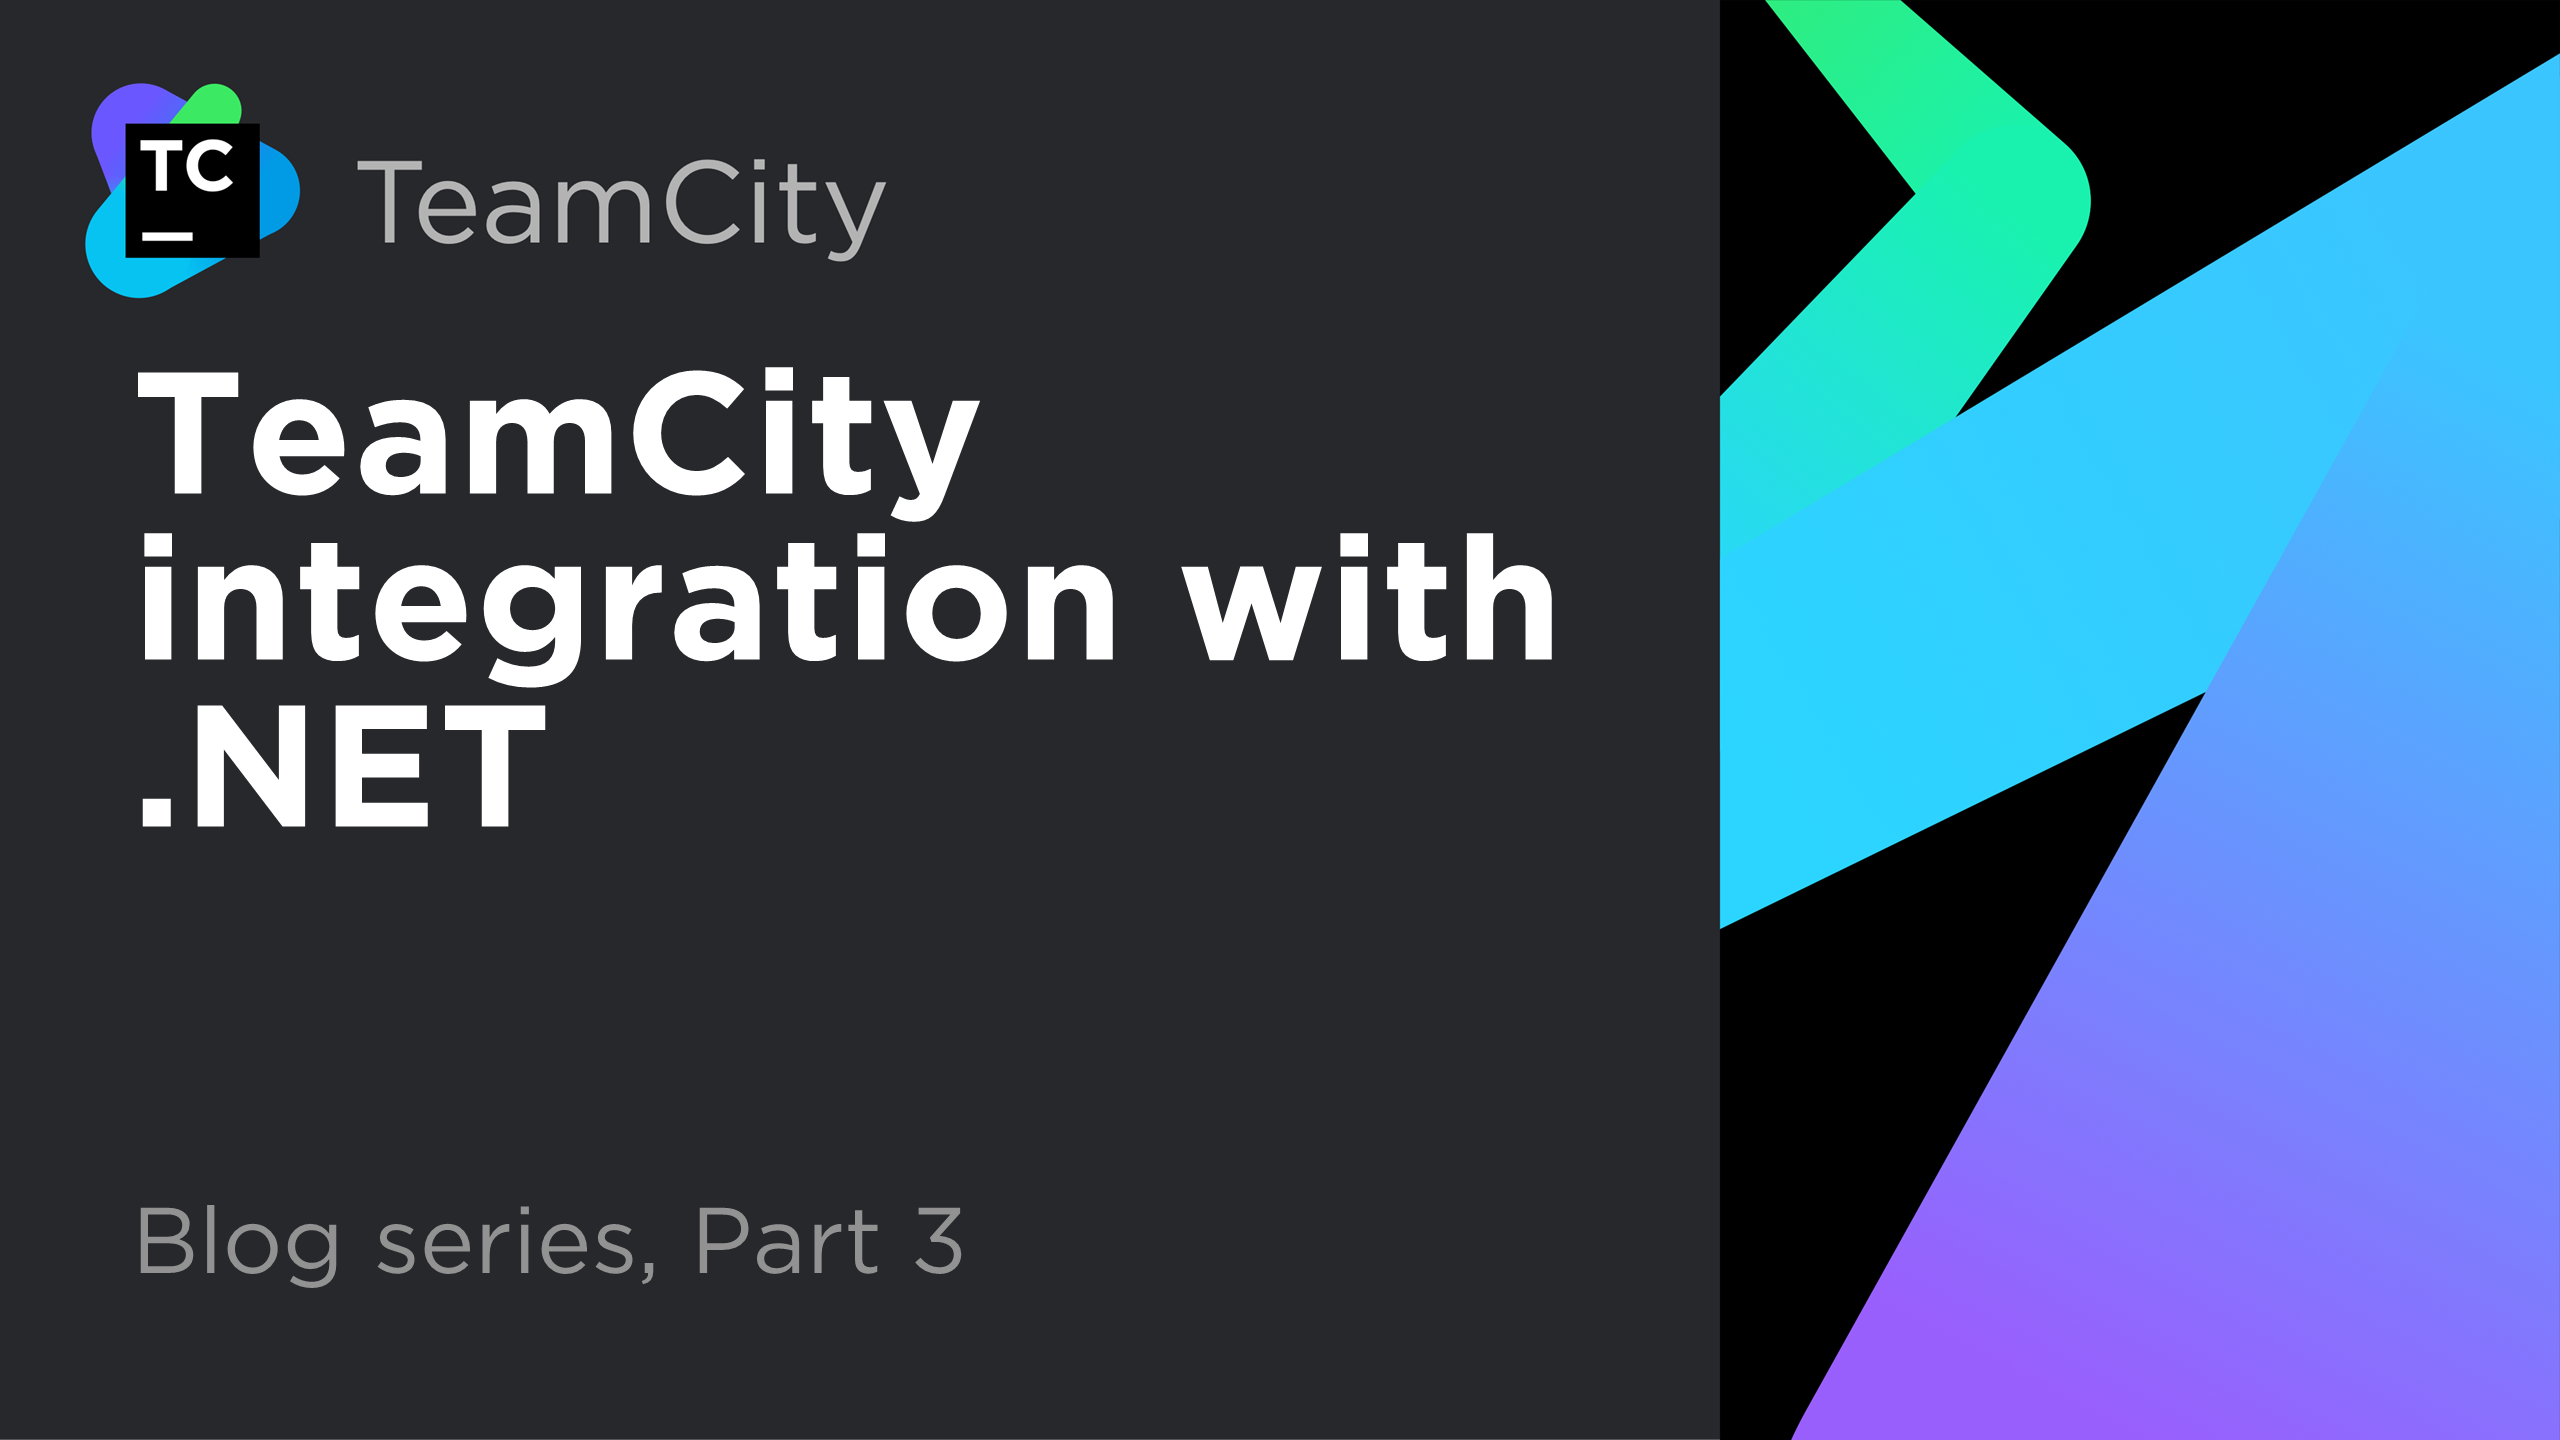 TeamCity integration with .NET